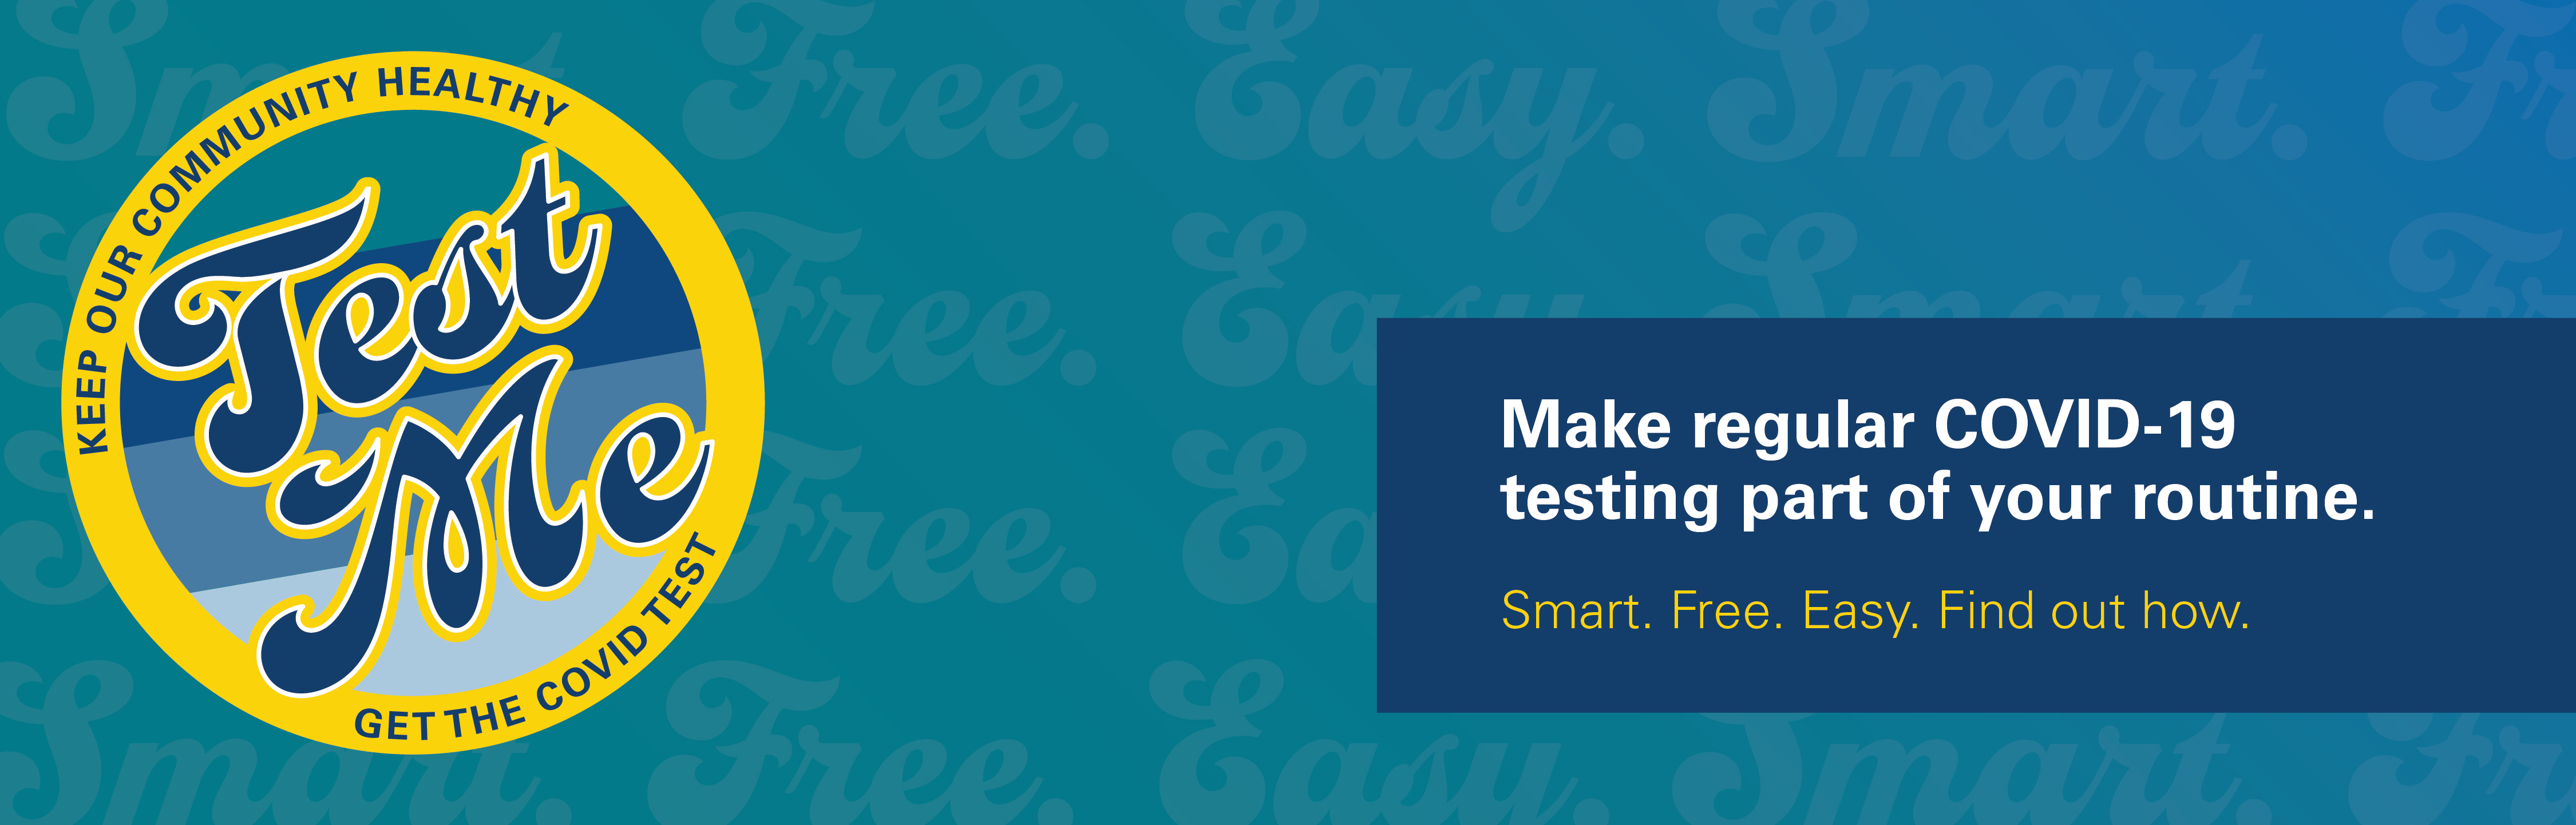 Win prizes at your testing site! Ten $10 gift cards will be given out each week. Prizes may include gift cards for grocery stores, Instacart, Grubhub and more! You do not need to take the COVID-19 test to enter. Please contact dsas@ucsc.edu with any questions or feedback.